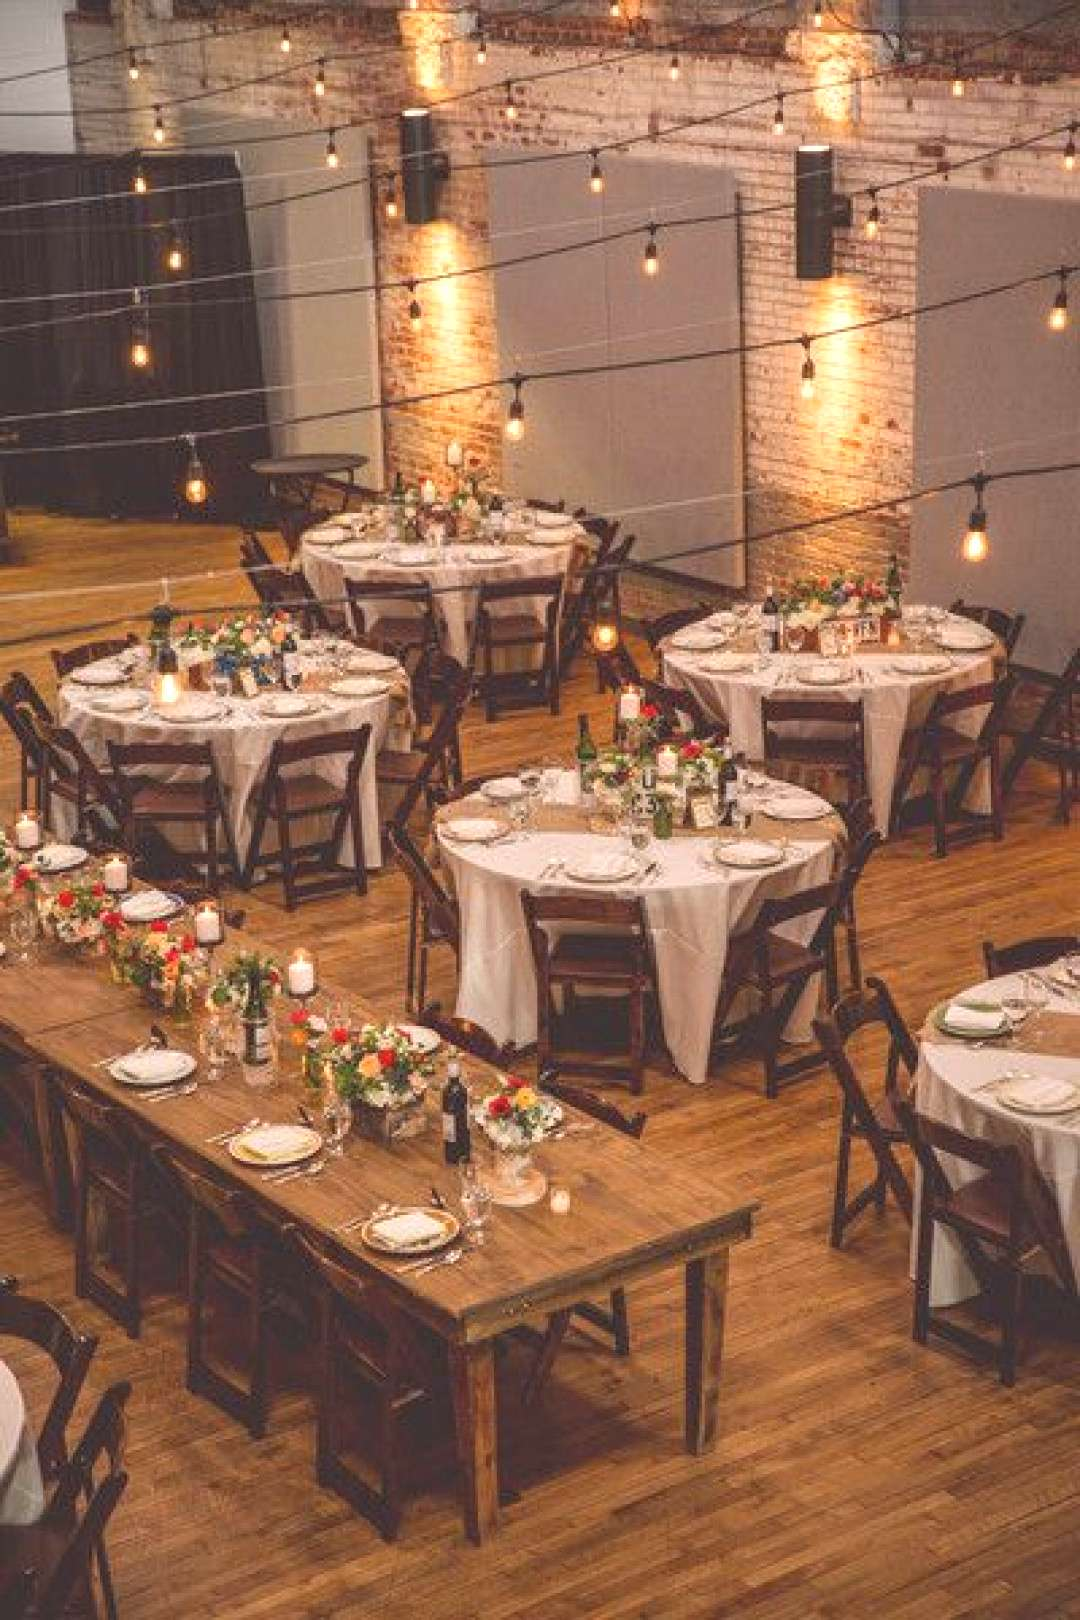 mix of farm tables and linened tabls